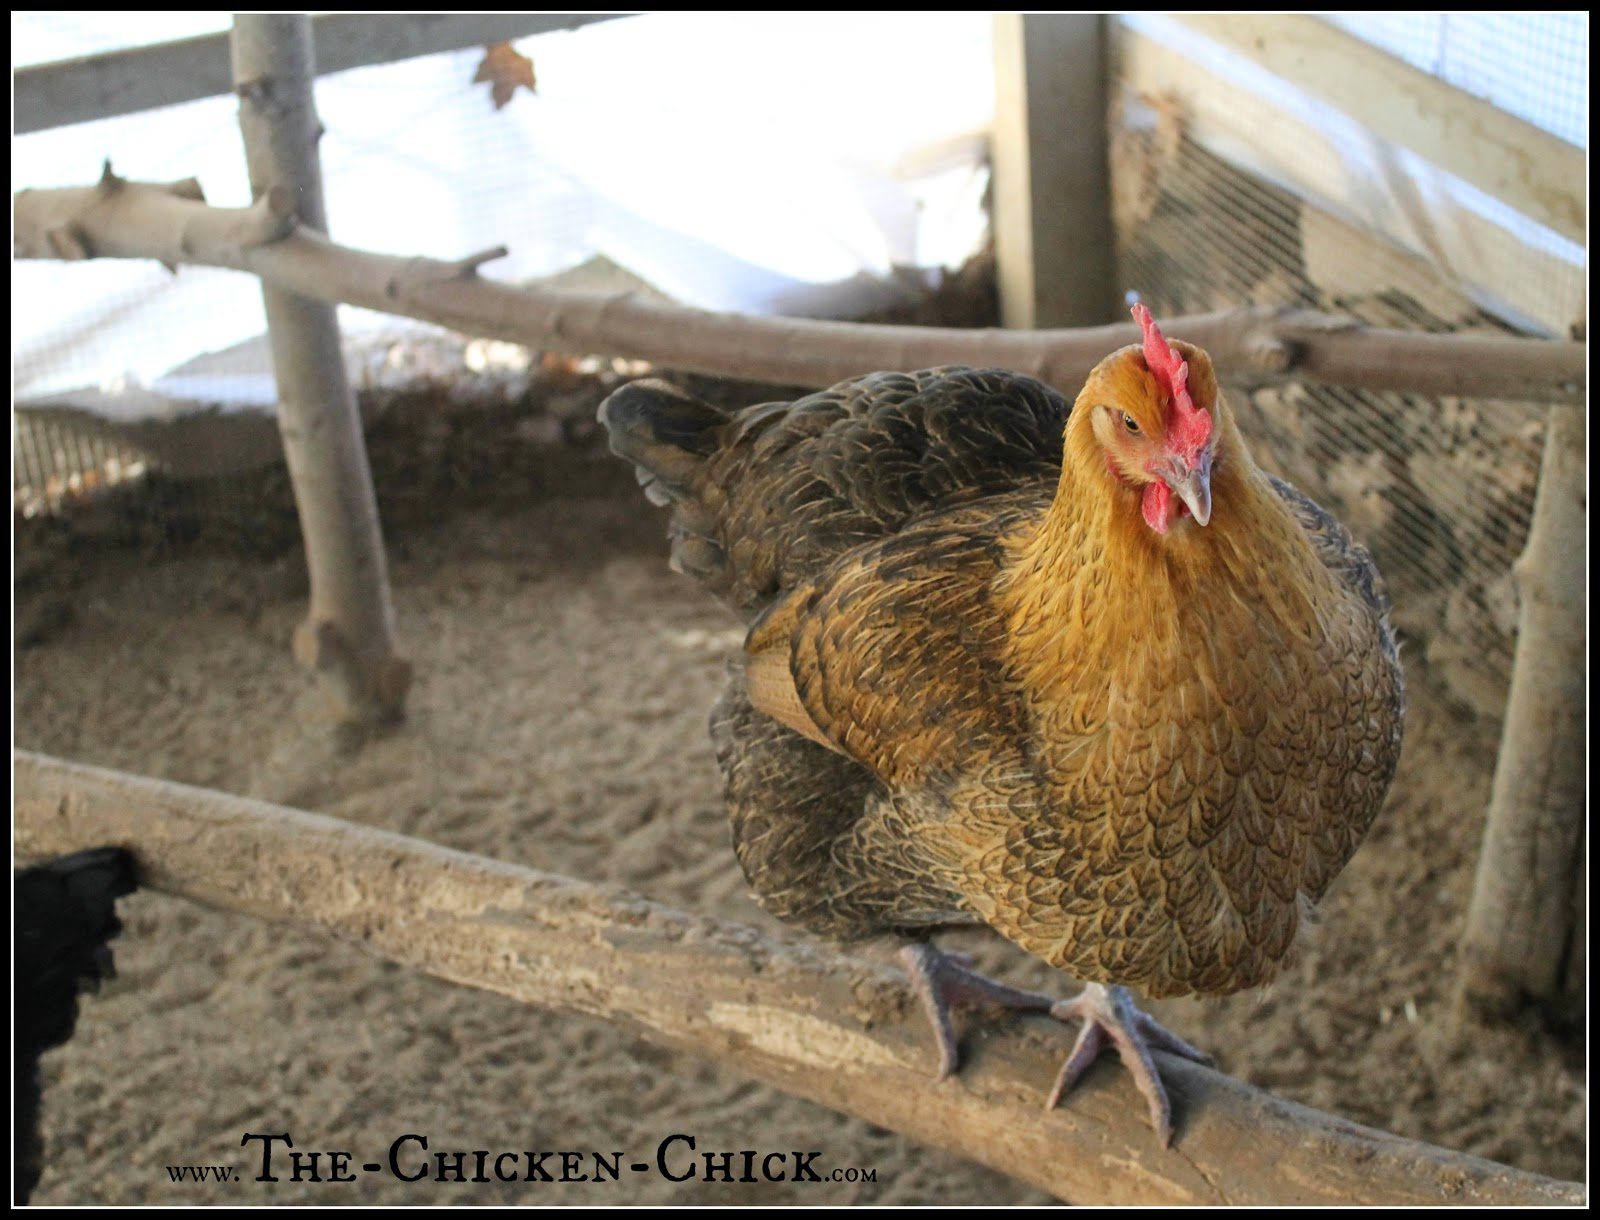 Chickens have a natural instinct to roost and perch up off the ground. Provide them with a variety of things to roost on and move them around from time-to-time to keep things interesting. By building up, the total square footage available to the flock is increases.